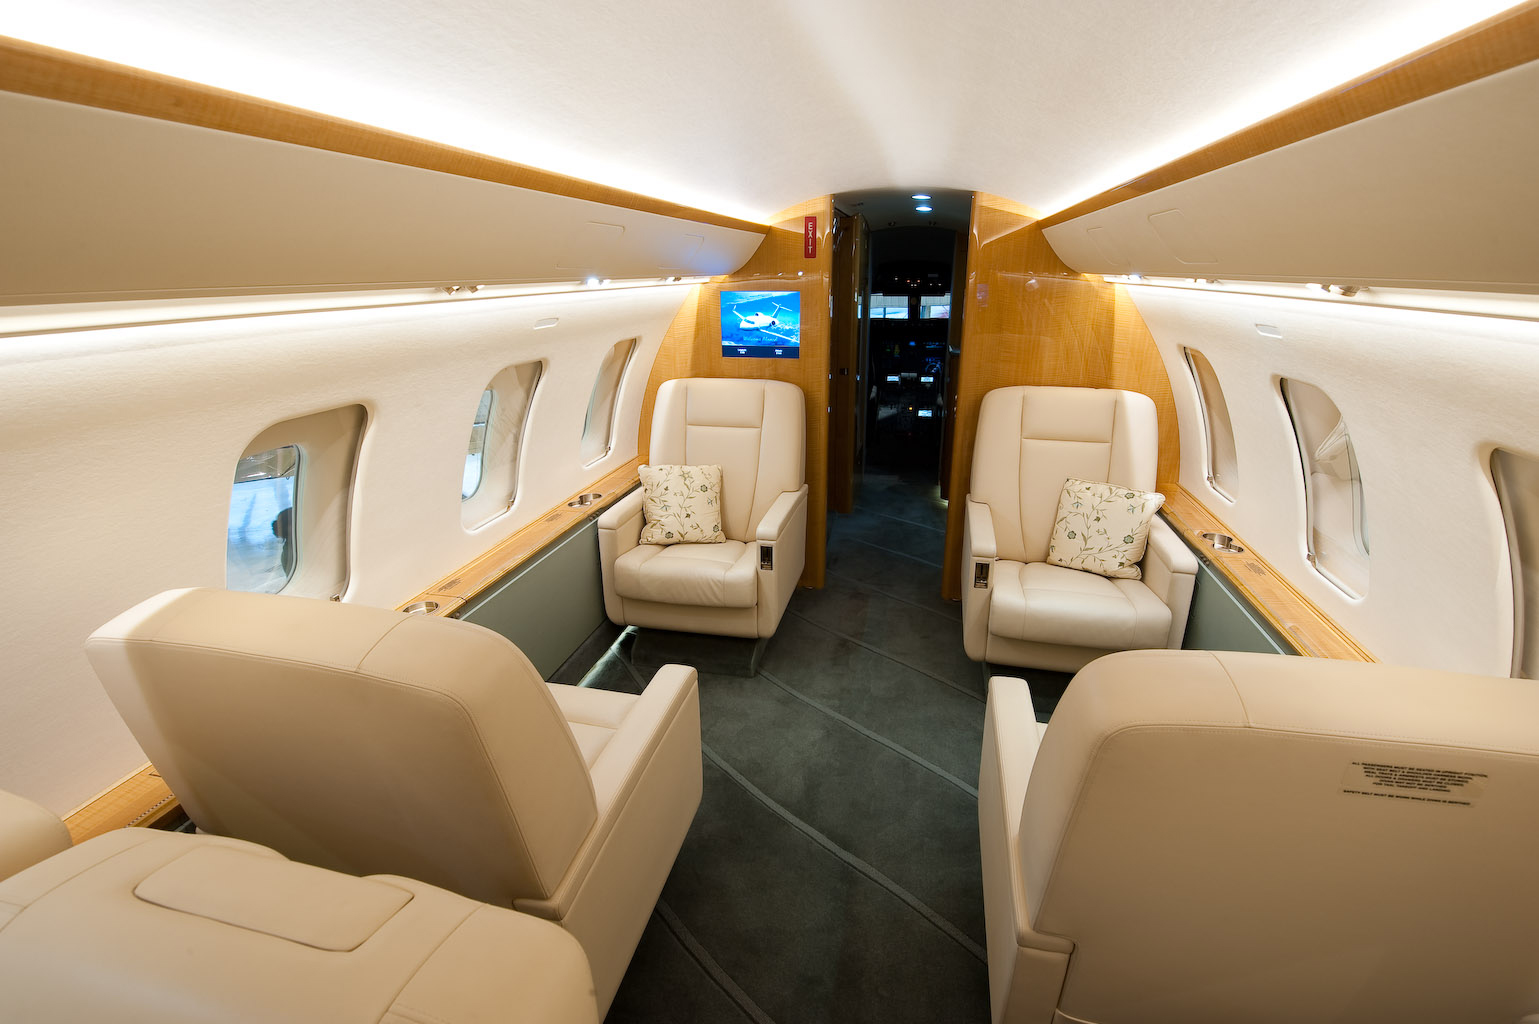 Challenger 605 5772 Interior 1 copy.jpg